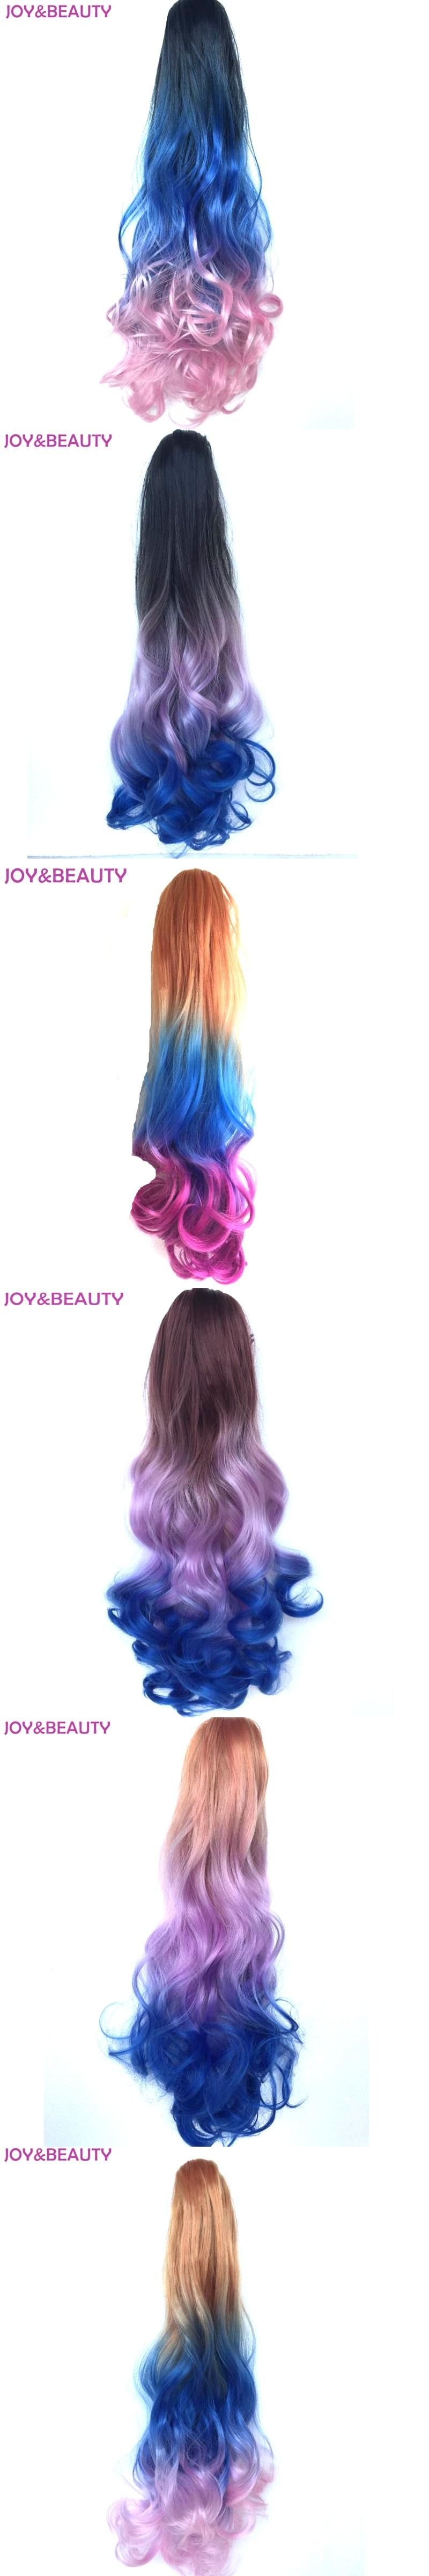 Joybeauty Hair Synthetic Wavy 3color Ombre Color Ponytail Extension